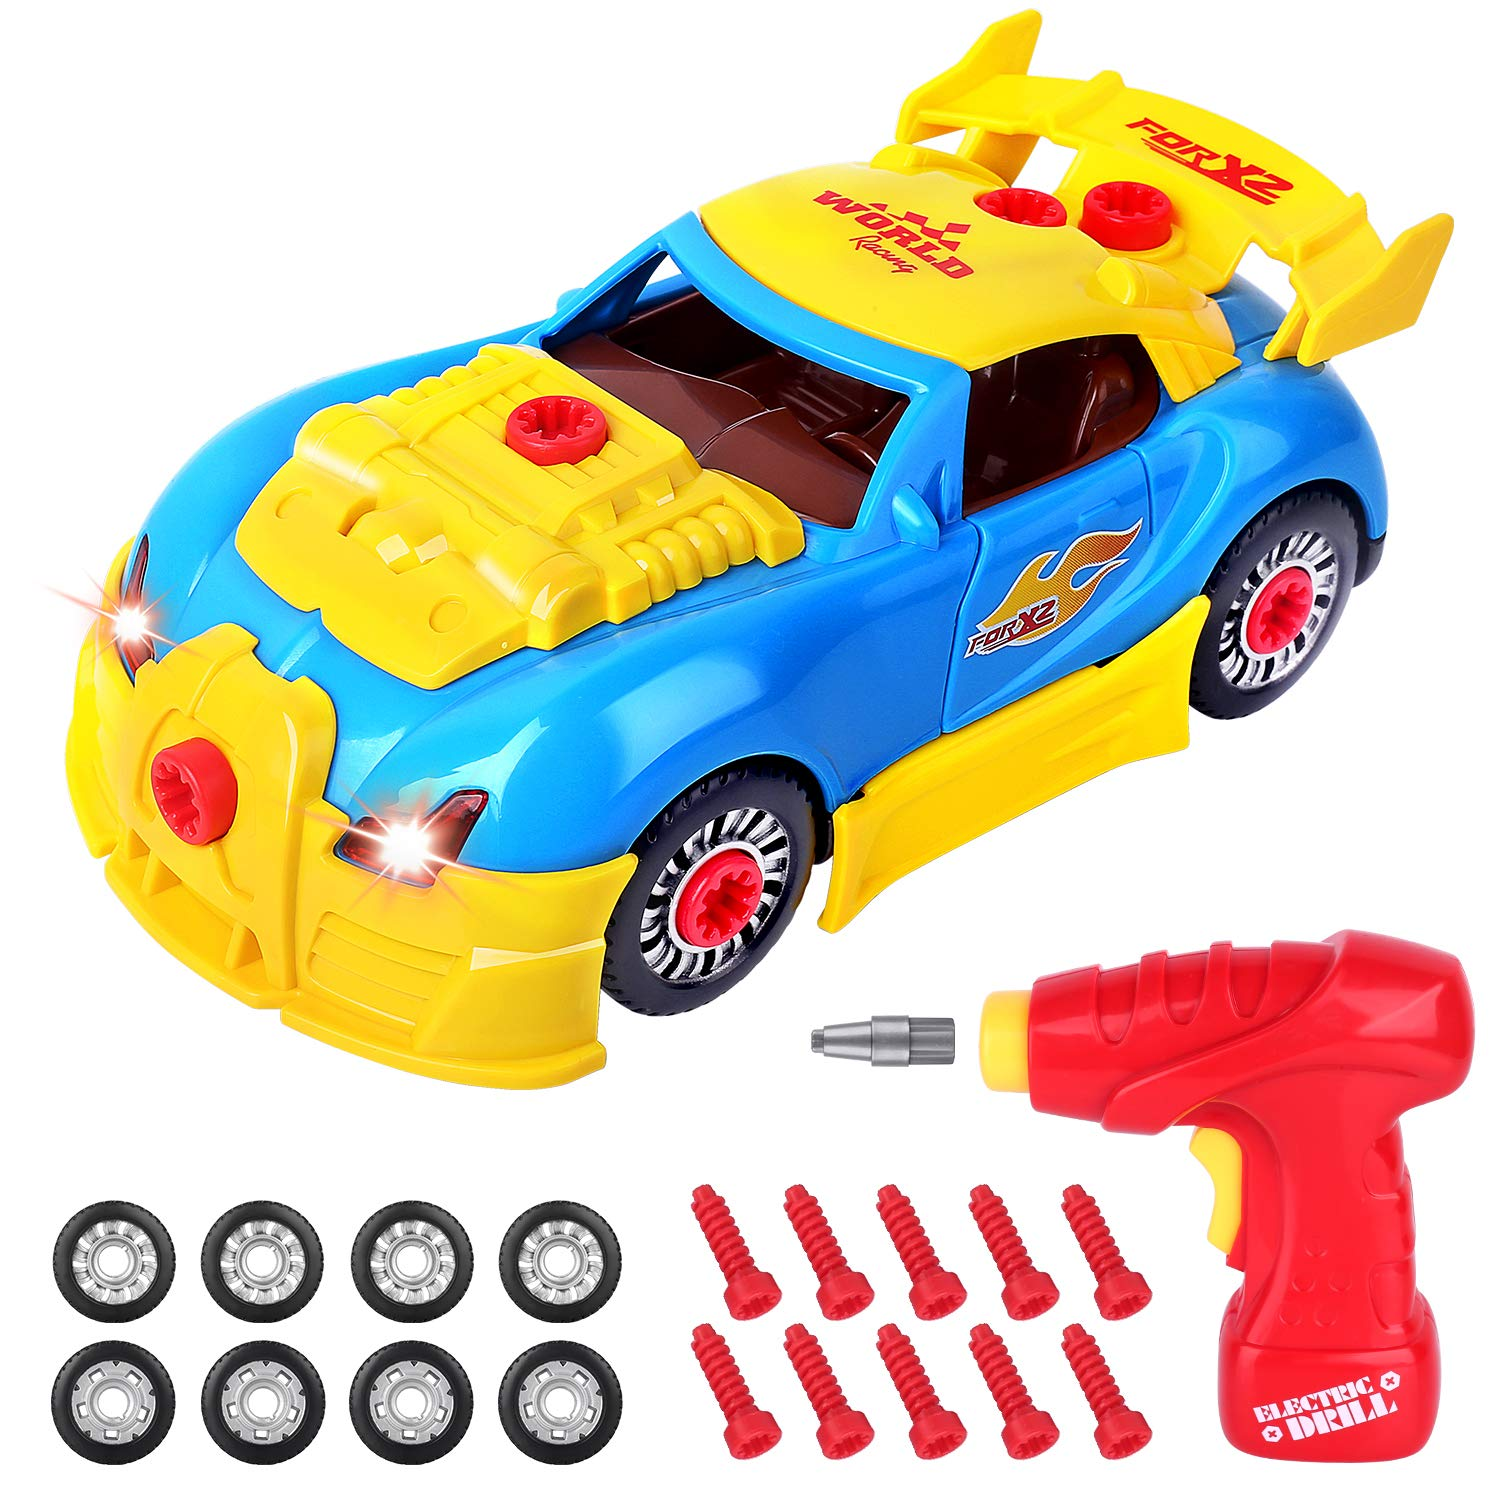 AOKESI Take Apart Racing Car Building Toy for Kids Construction Kits with Sounds & Lights & Drill for Boys Girls Ages 3+ Kids (30 Pieces) STEM Toys by AOKESI